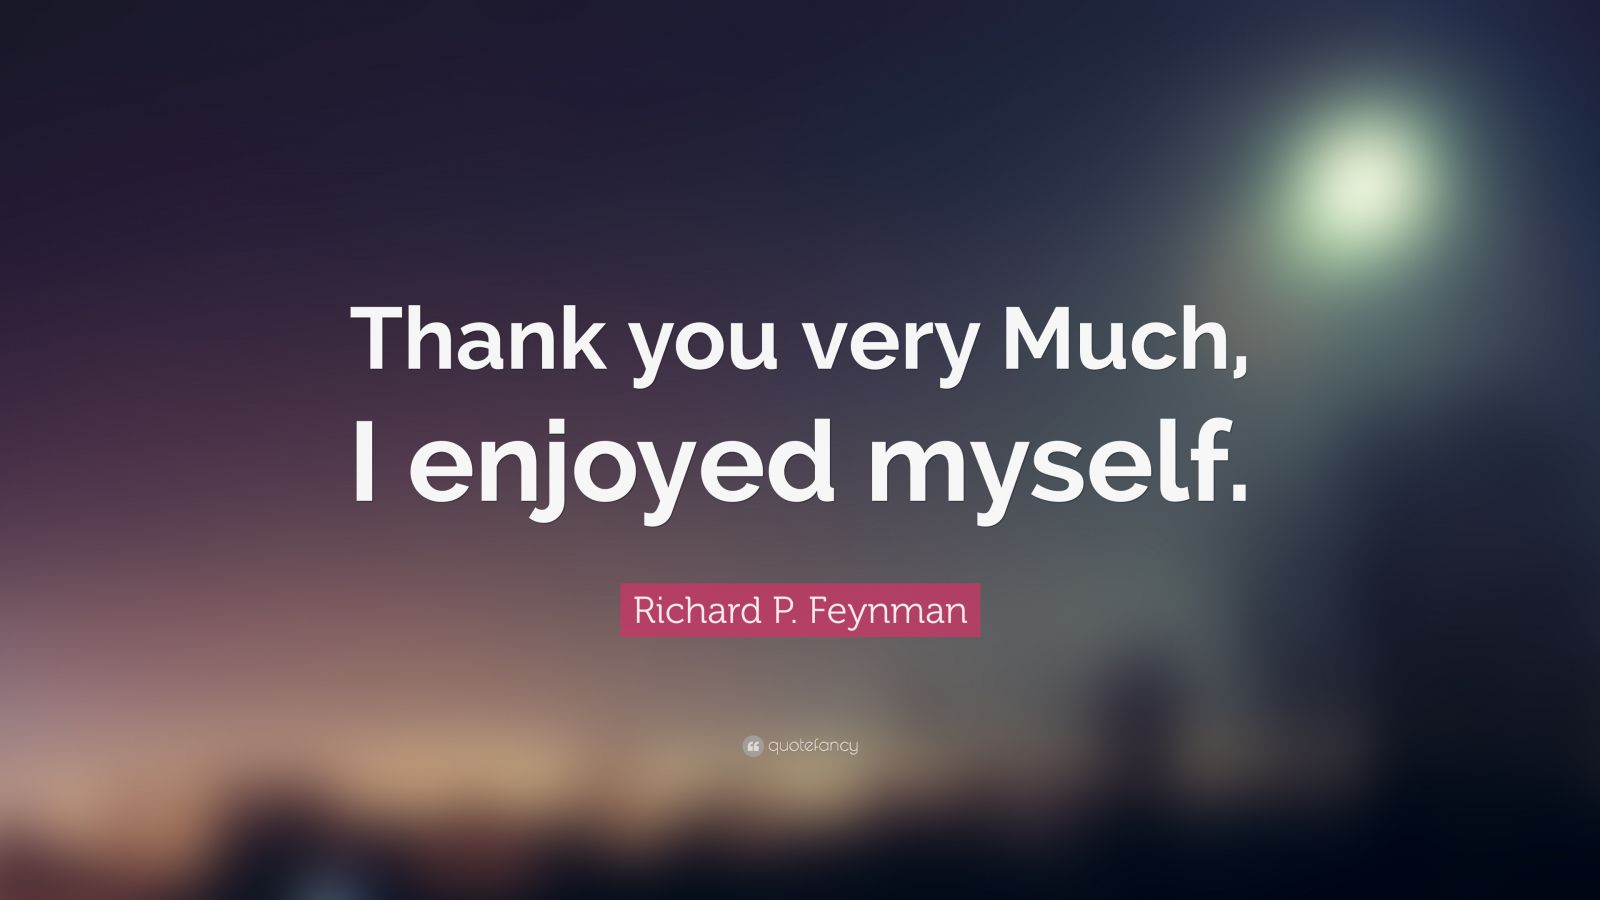 Studying Quotes Wallpaper Richard P Feynman Quote Thank You Very Much I Enjoyed